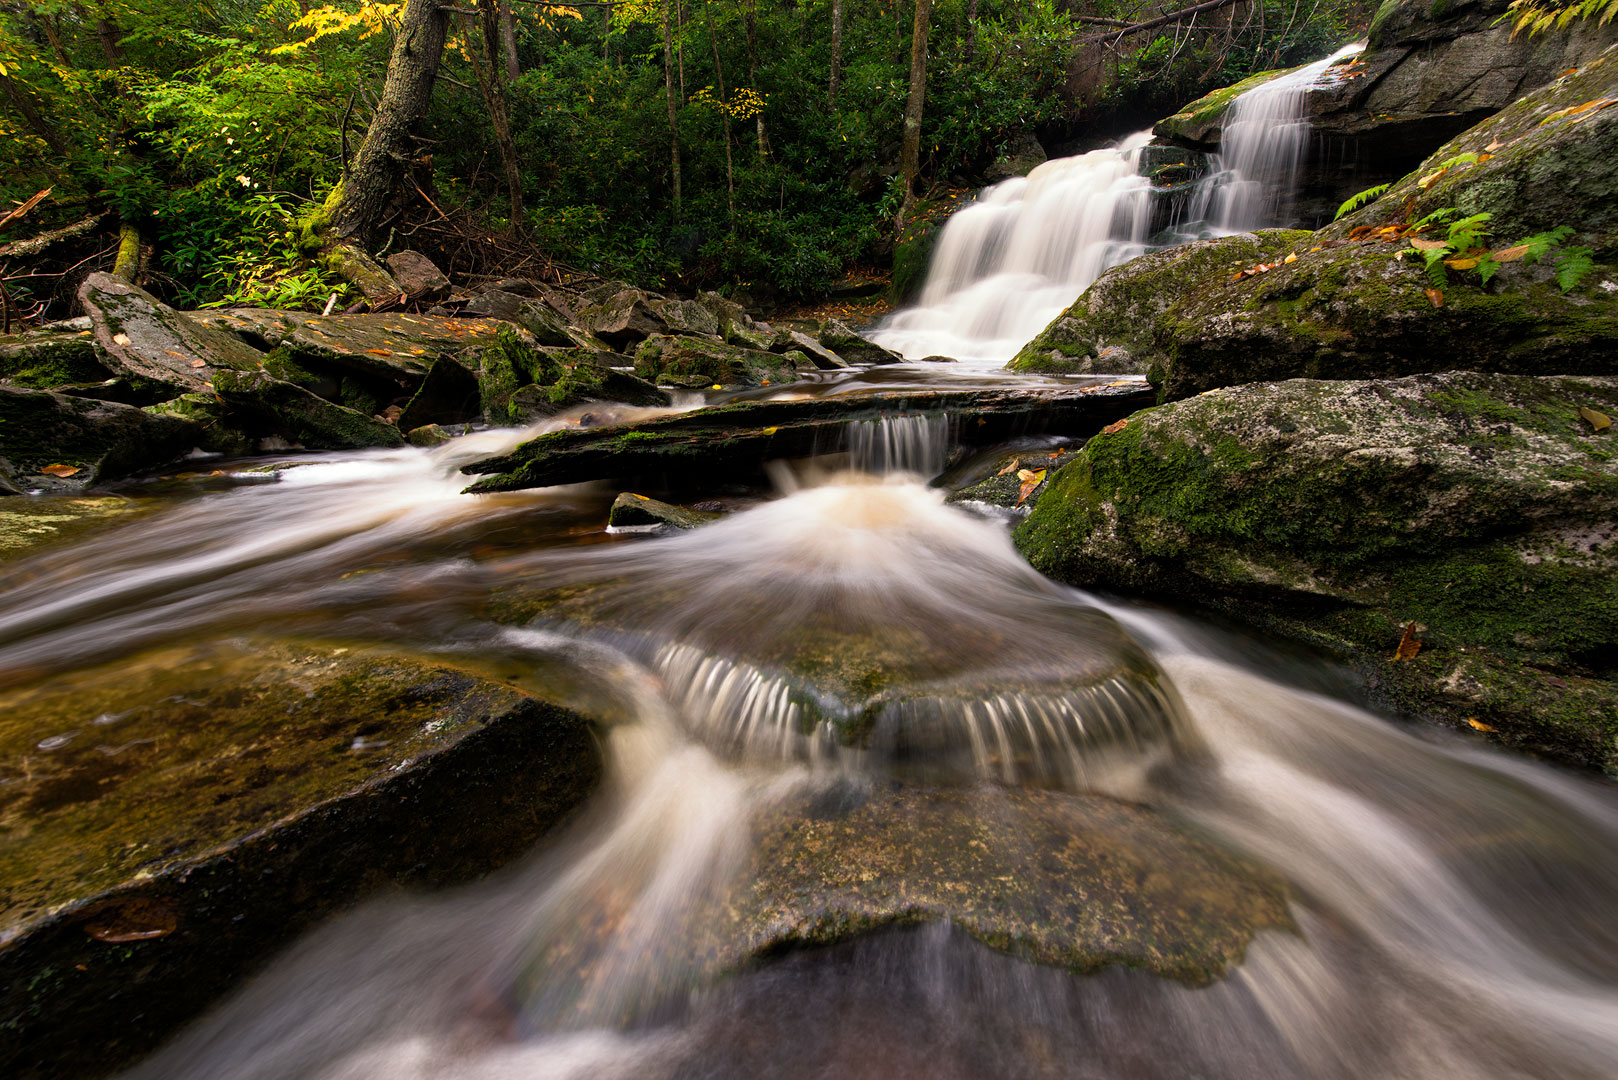 Forest, Water Falls, Ferns, West Virginia, Elakala Falls, Shays Run, Blackwater Canyon, Elakala, Allegheny Mountains, Monongahela National Forest, Blackwater State Park, Third Falls, Day, photo